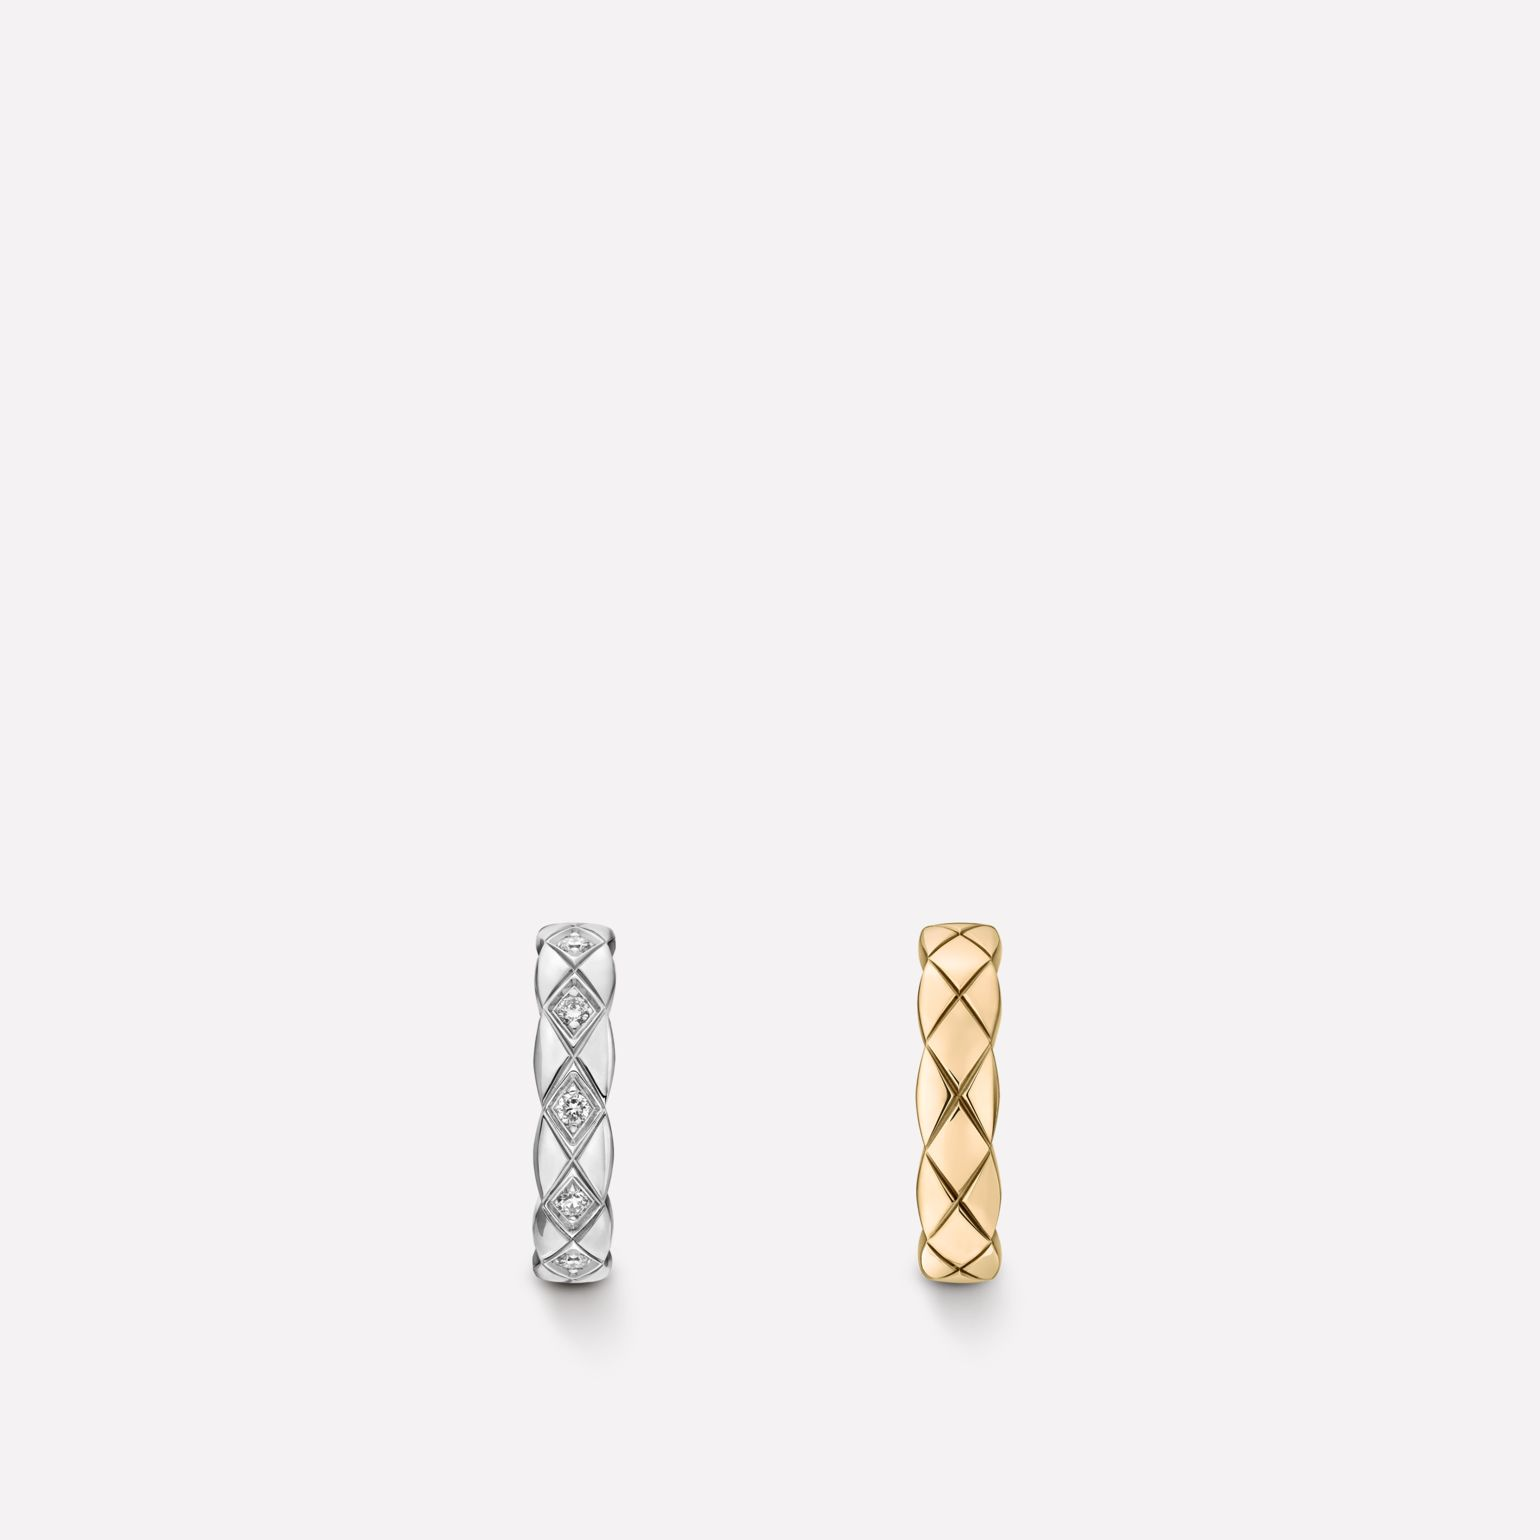 Coco Crush earrings Quilted motif earrings in 18K white and BEIGE GOLD and diamonds